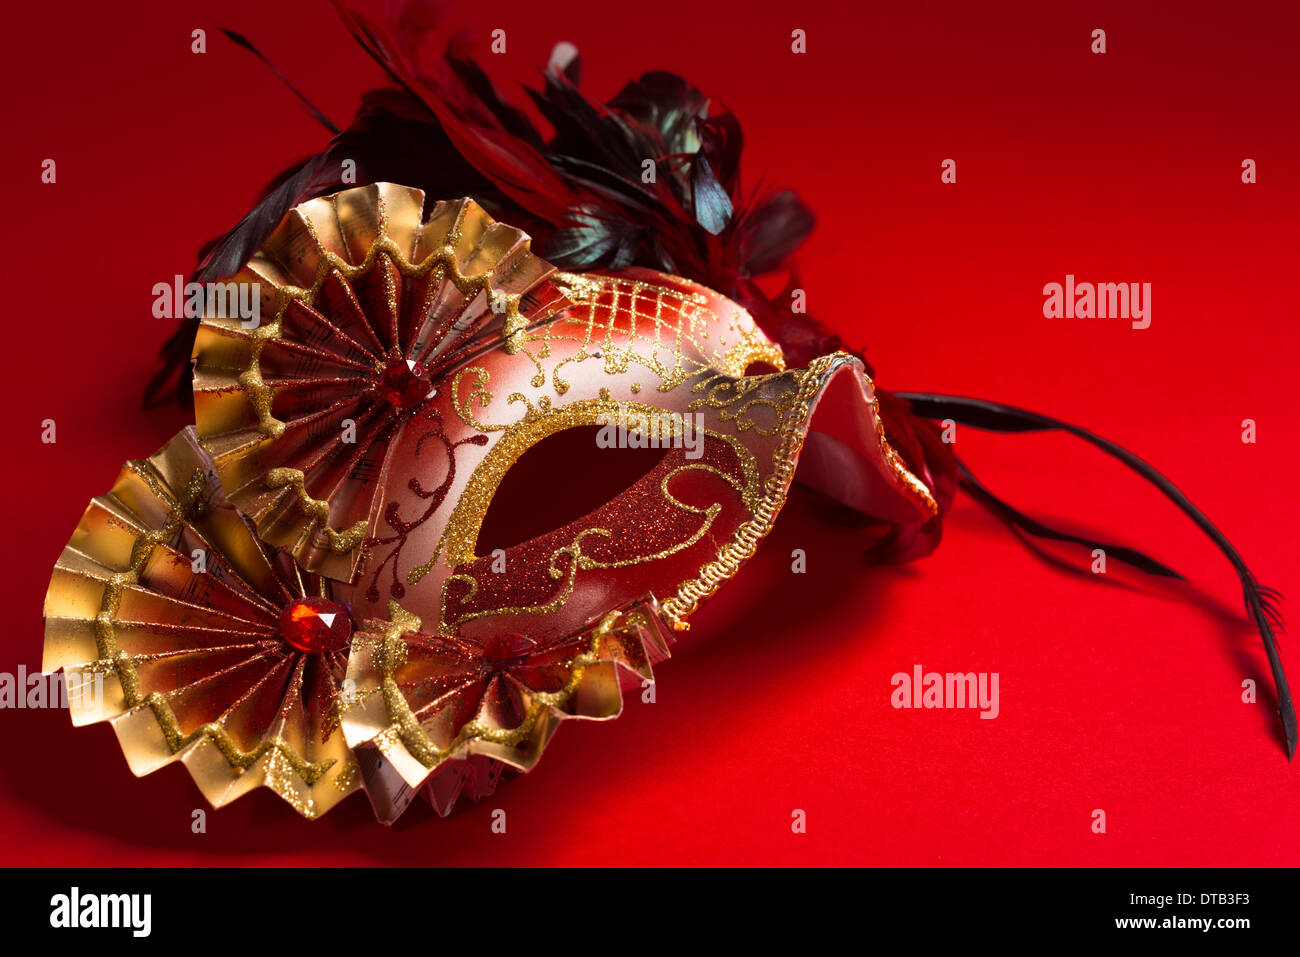 A red and gold venetian, mardi gras mask on a red background - Stock Image